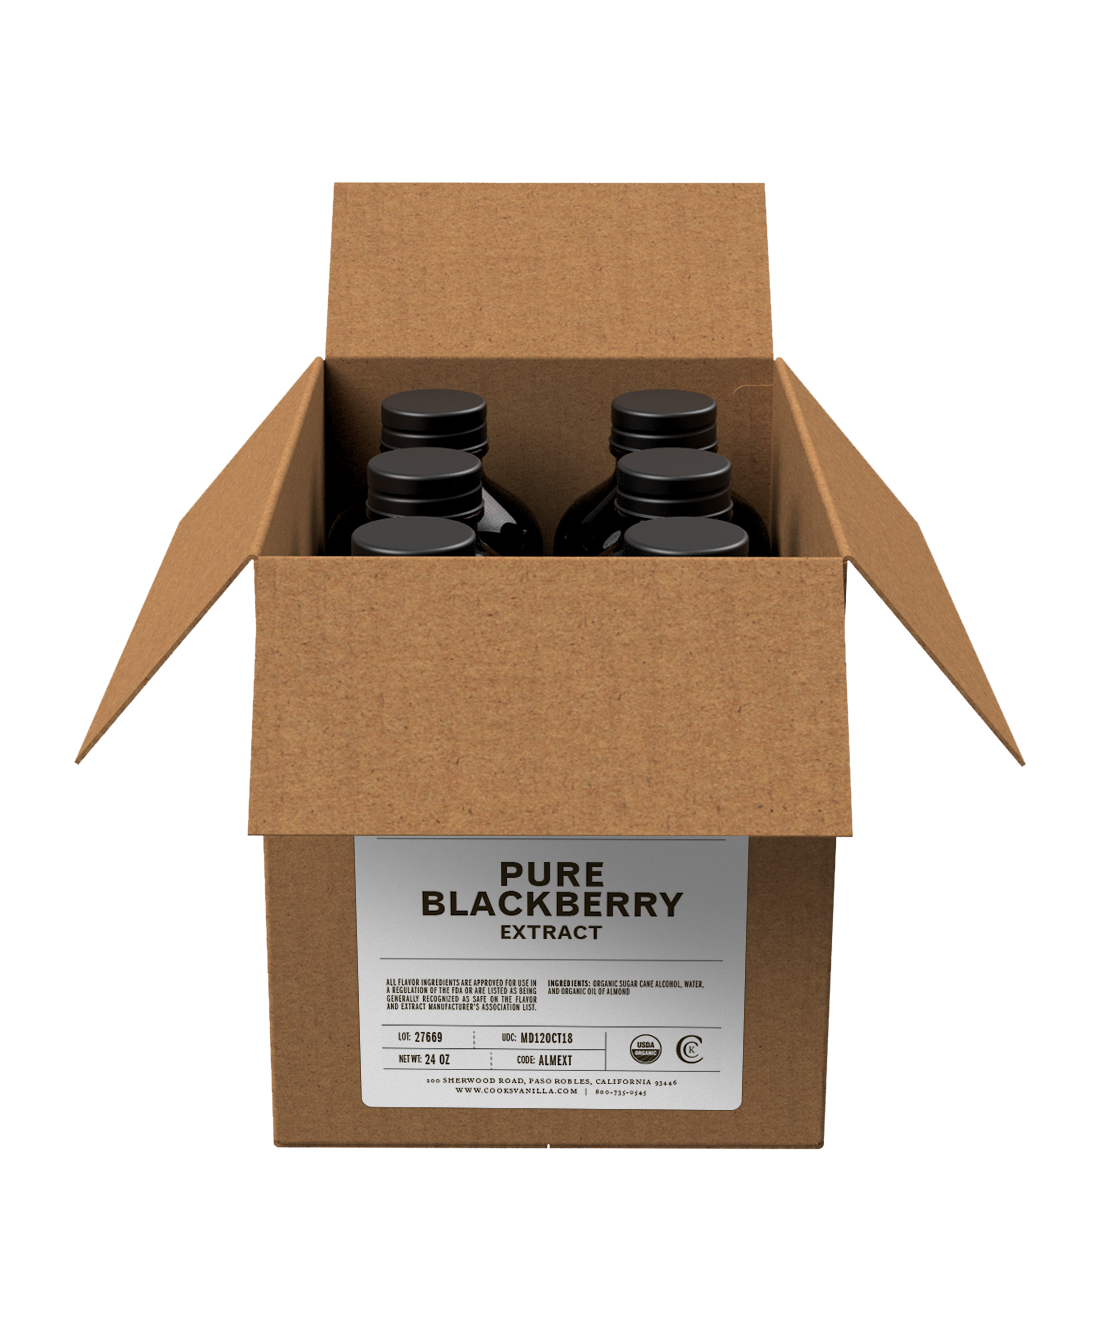 Flavoring | Blackberry Extract (Pure) | Packs and Cases